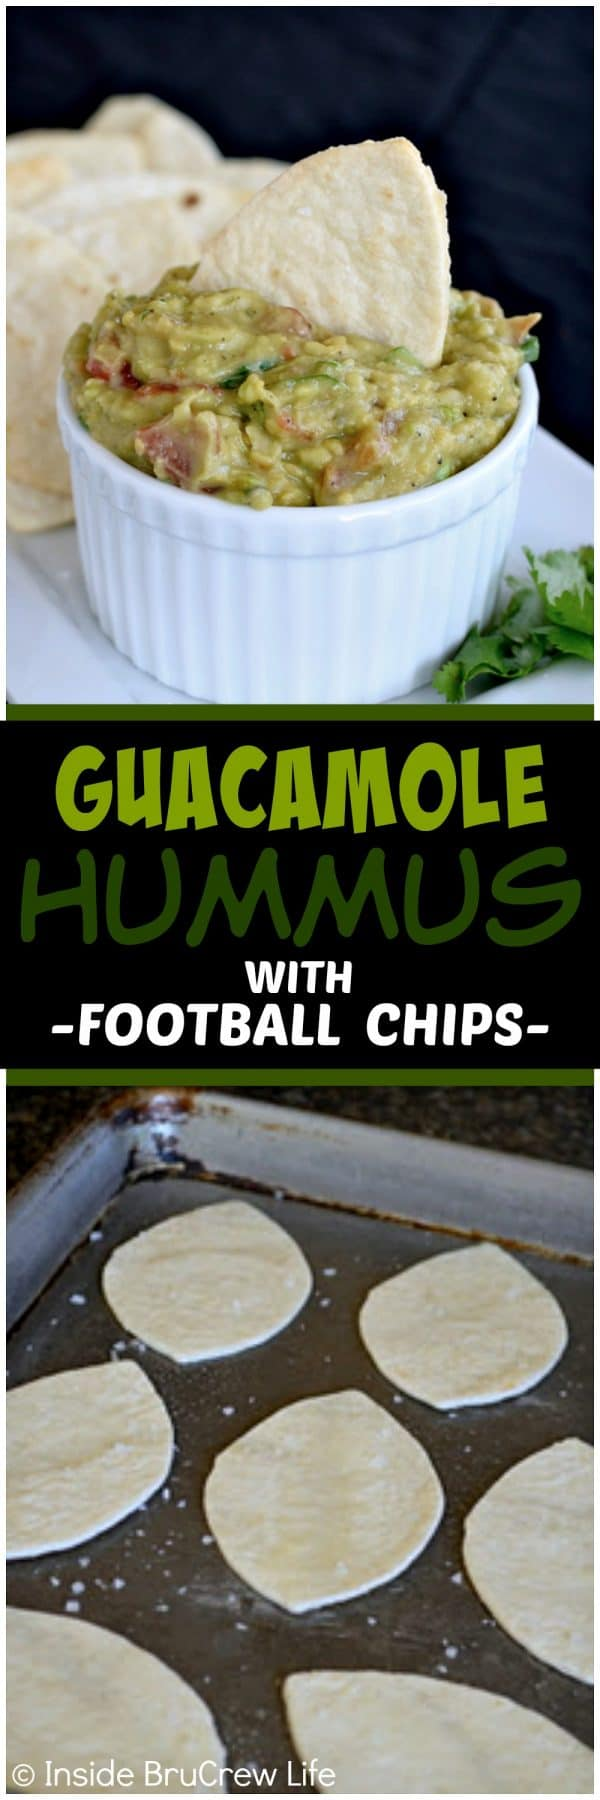 Guacamole Hummus with Football Chips - this chunky and spicy appetizer is made by combining our two favorite dips into one amazing snack. Homemade football chips make this a great recipe for game day parties.